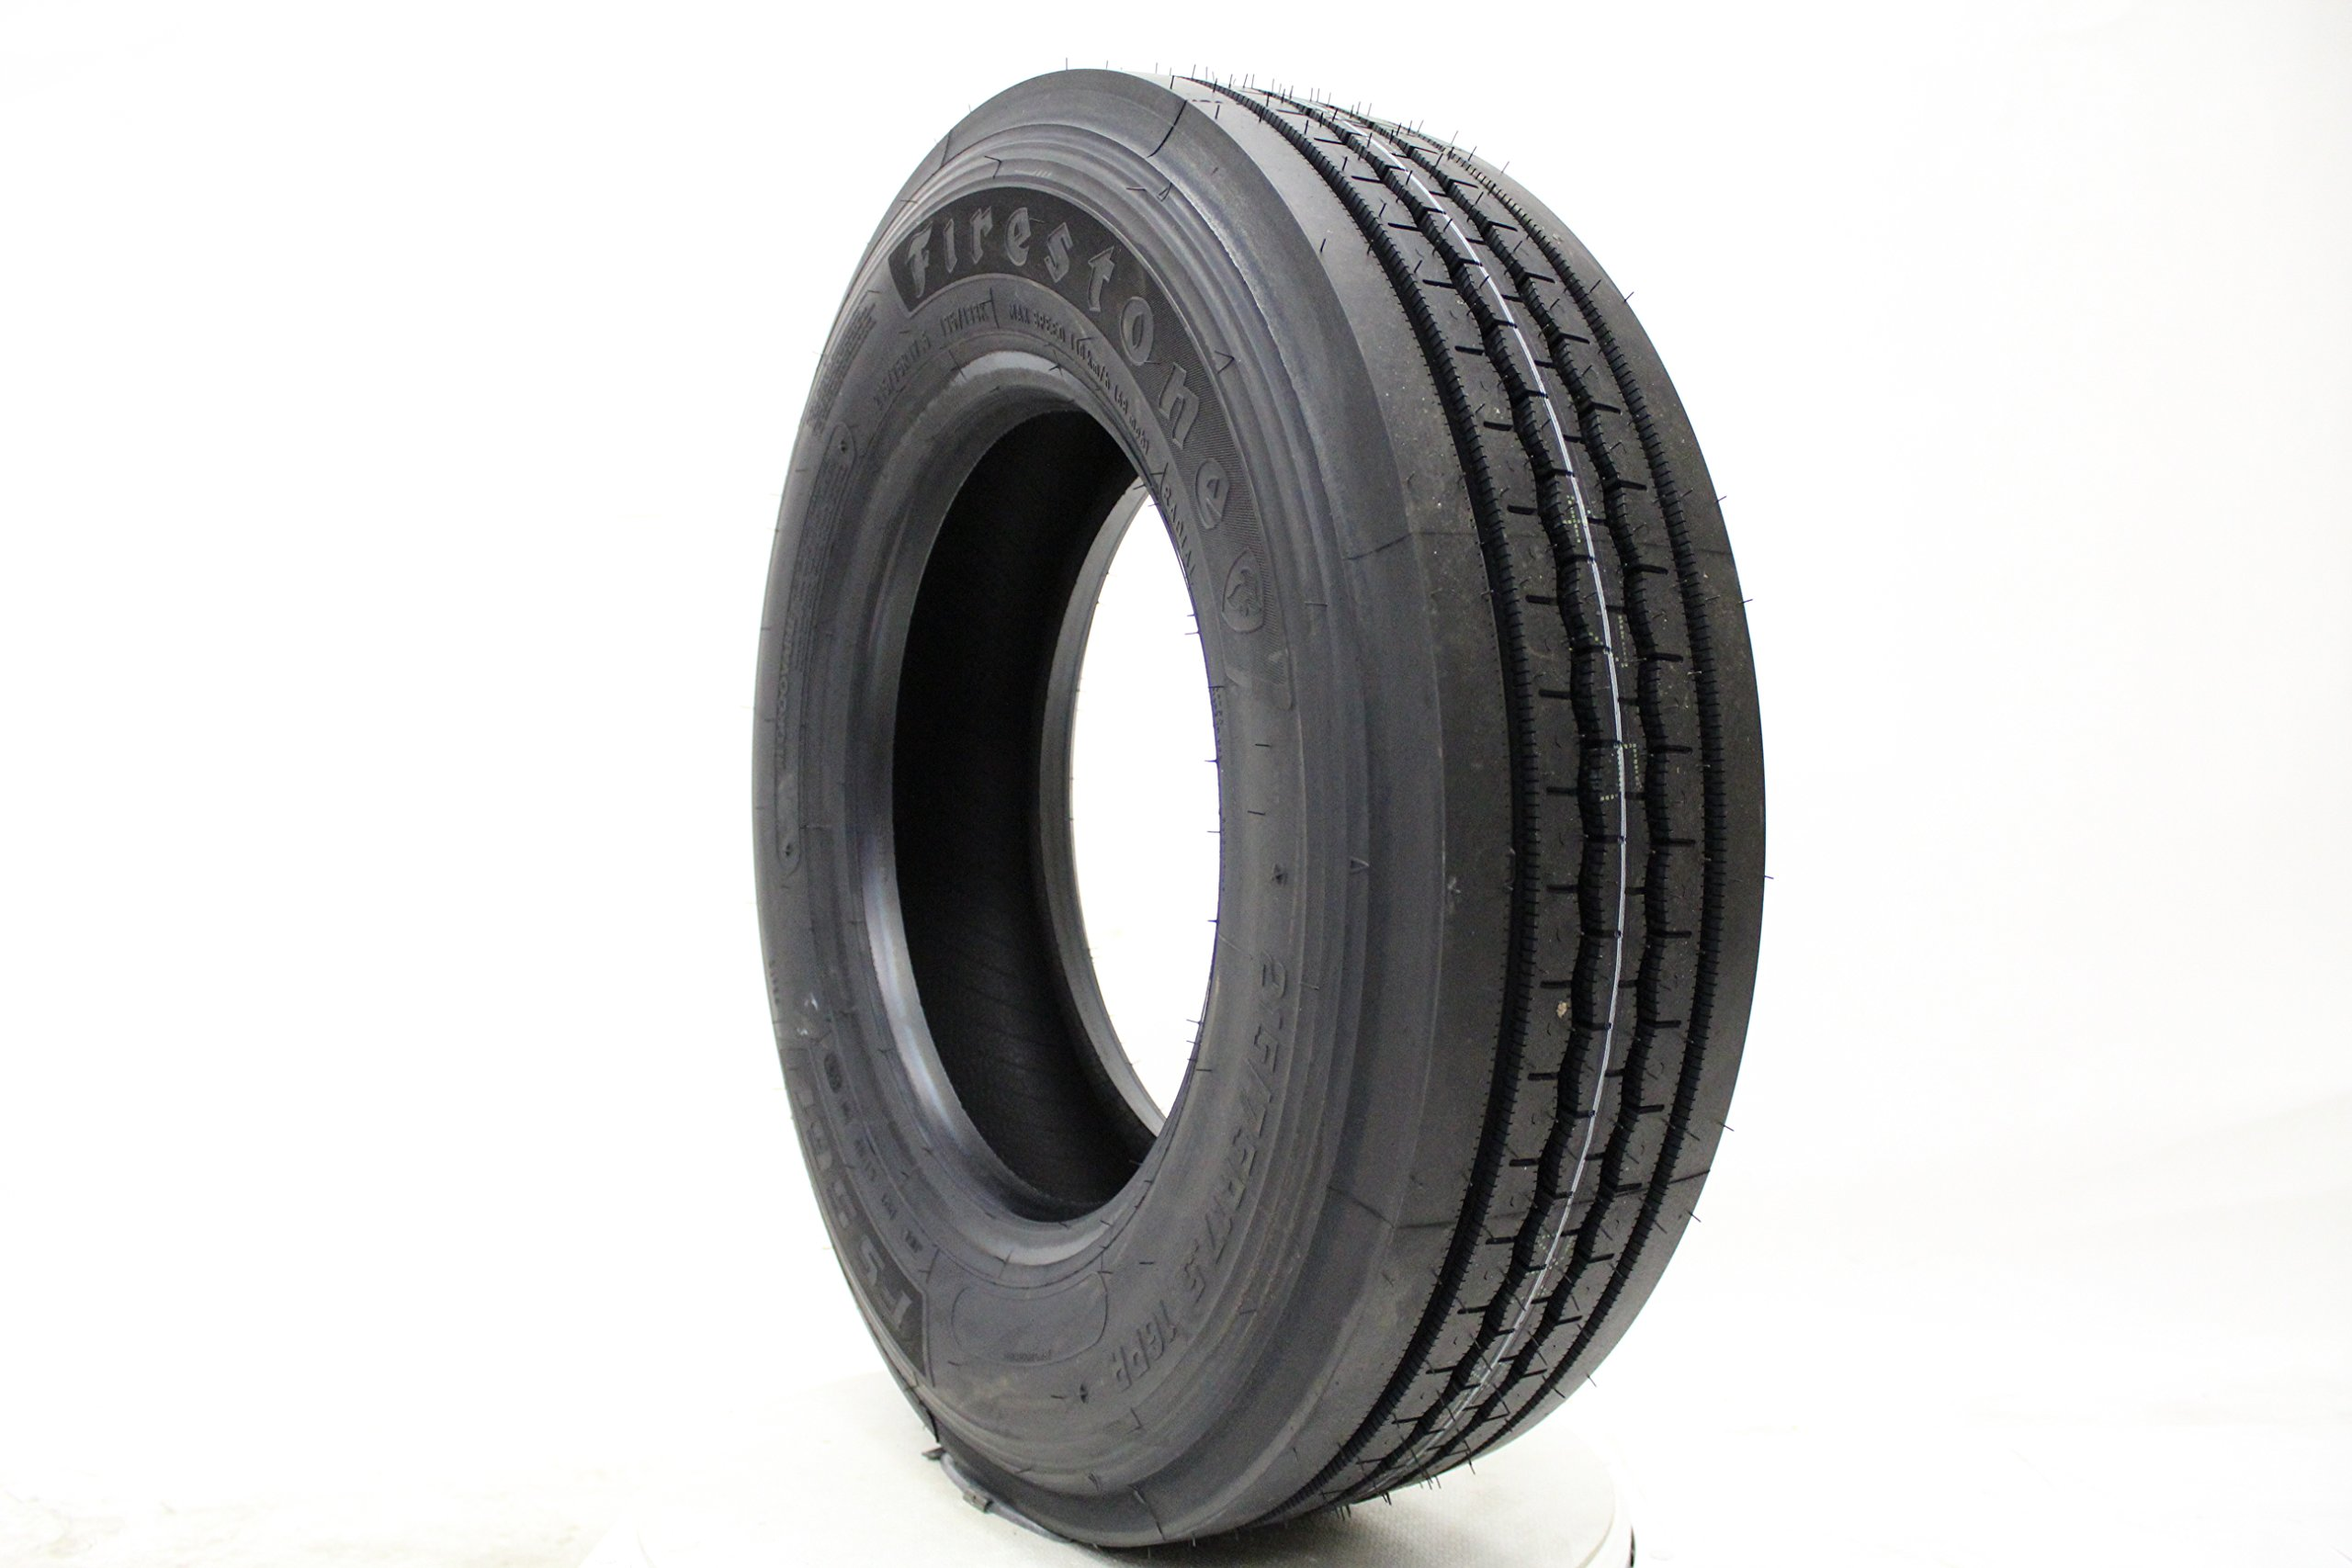 Firestone FS561 Commercial Truck Tire - 245/70R19.5 00